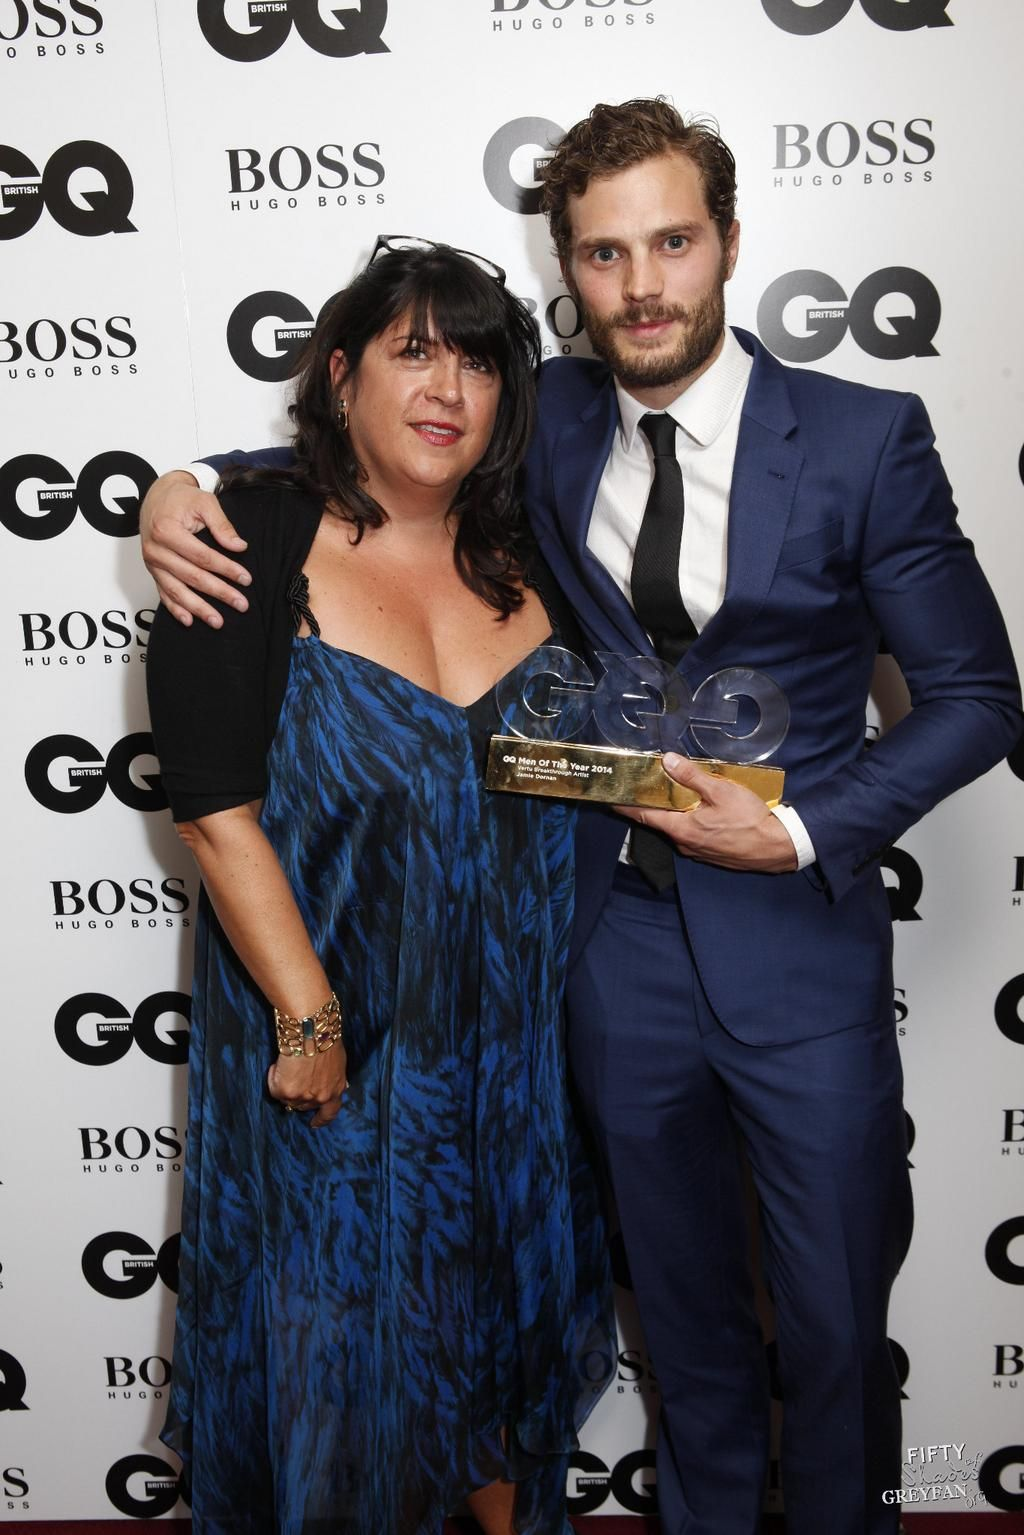 Fifty Shades Freed on (With images)   Jamie dornan, Gq awards ...